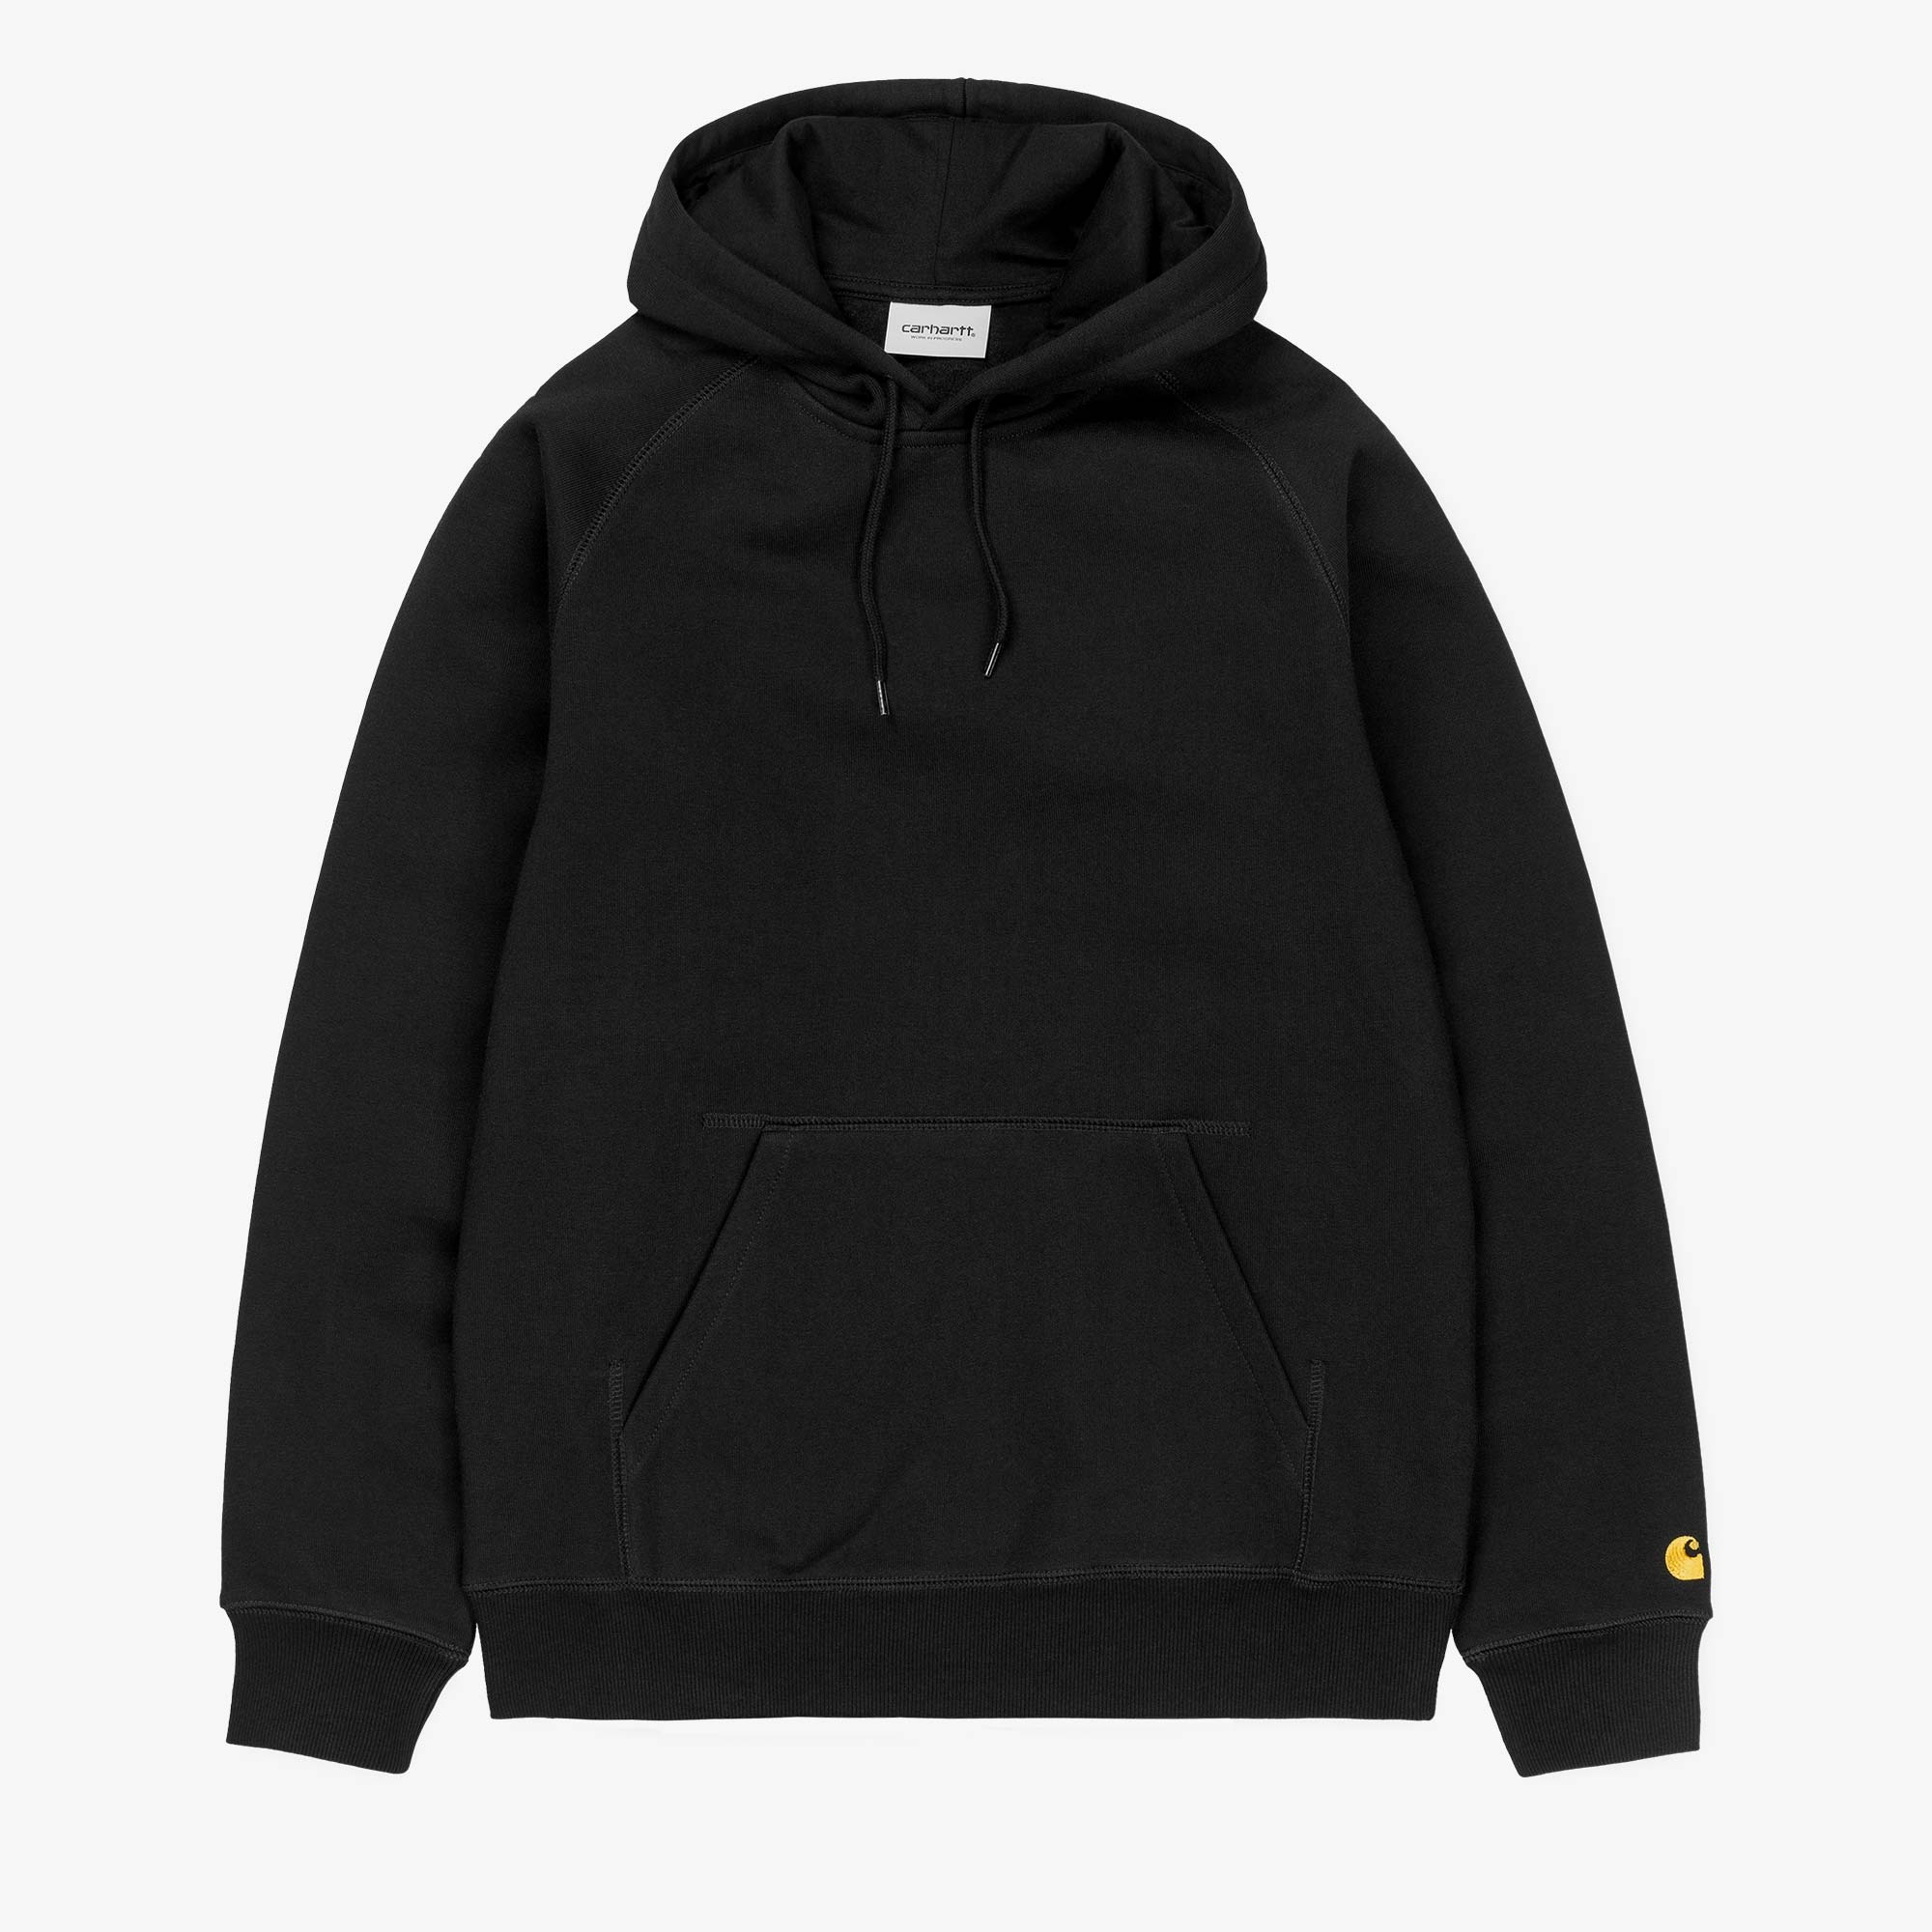 Carhartt WIP Hooded Chase Sweat - Black / Gold 1